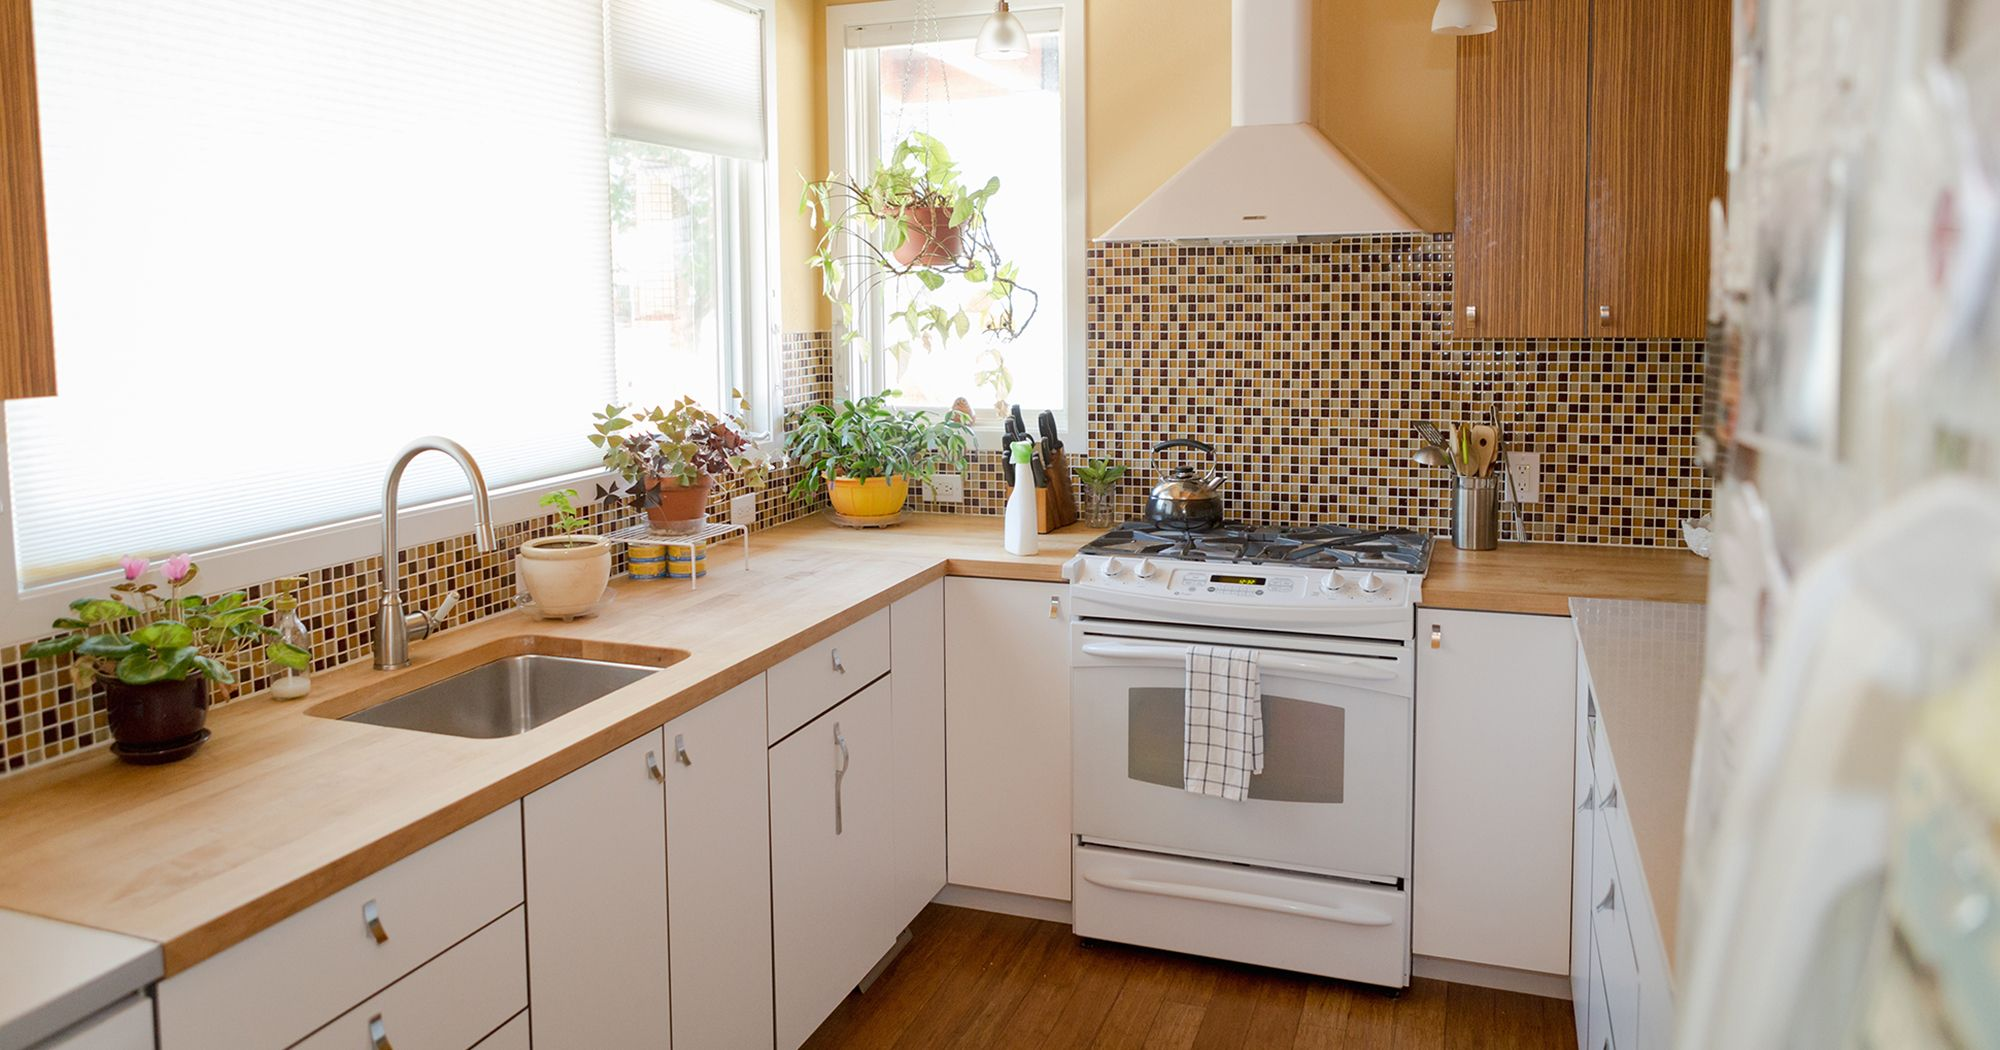 Building Your Dream Kitchen: Build Your Dream Kitchen In 2019 With These Budget